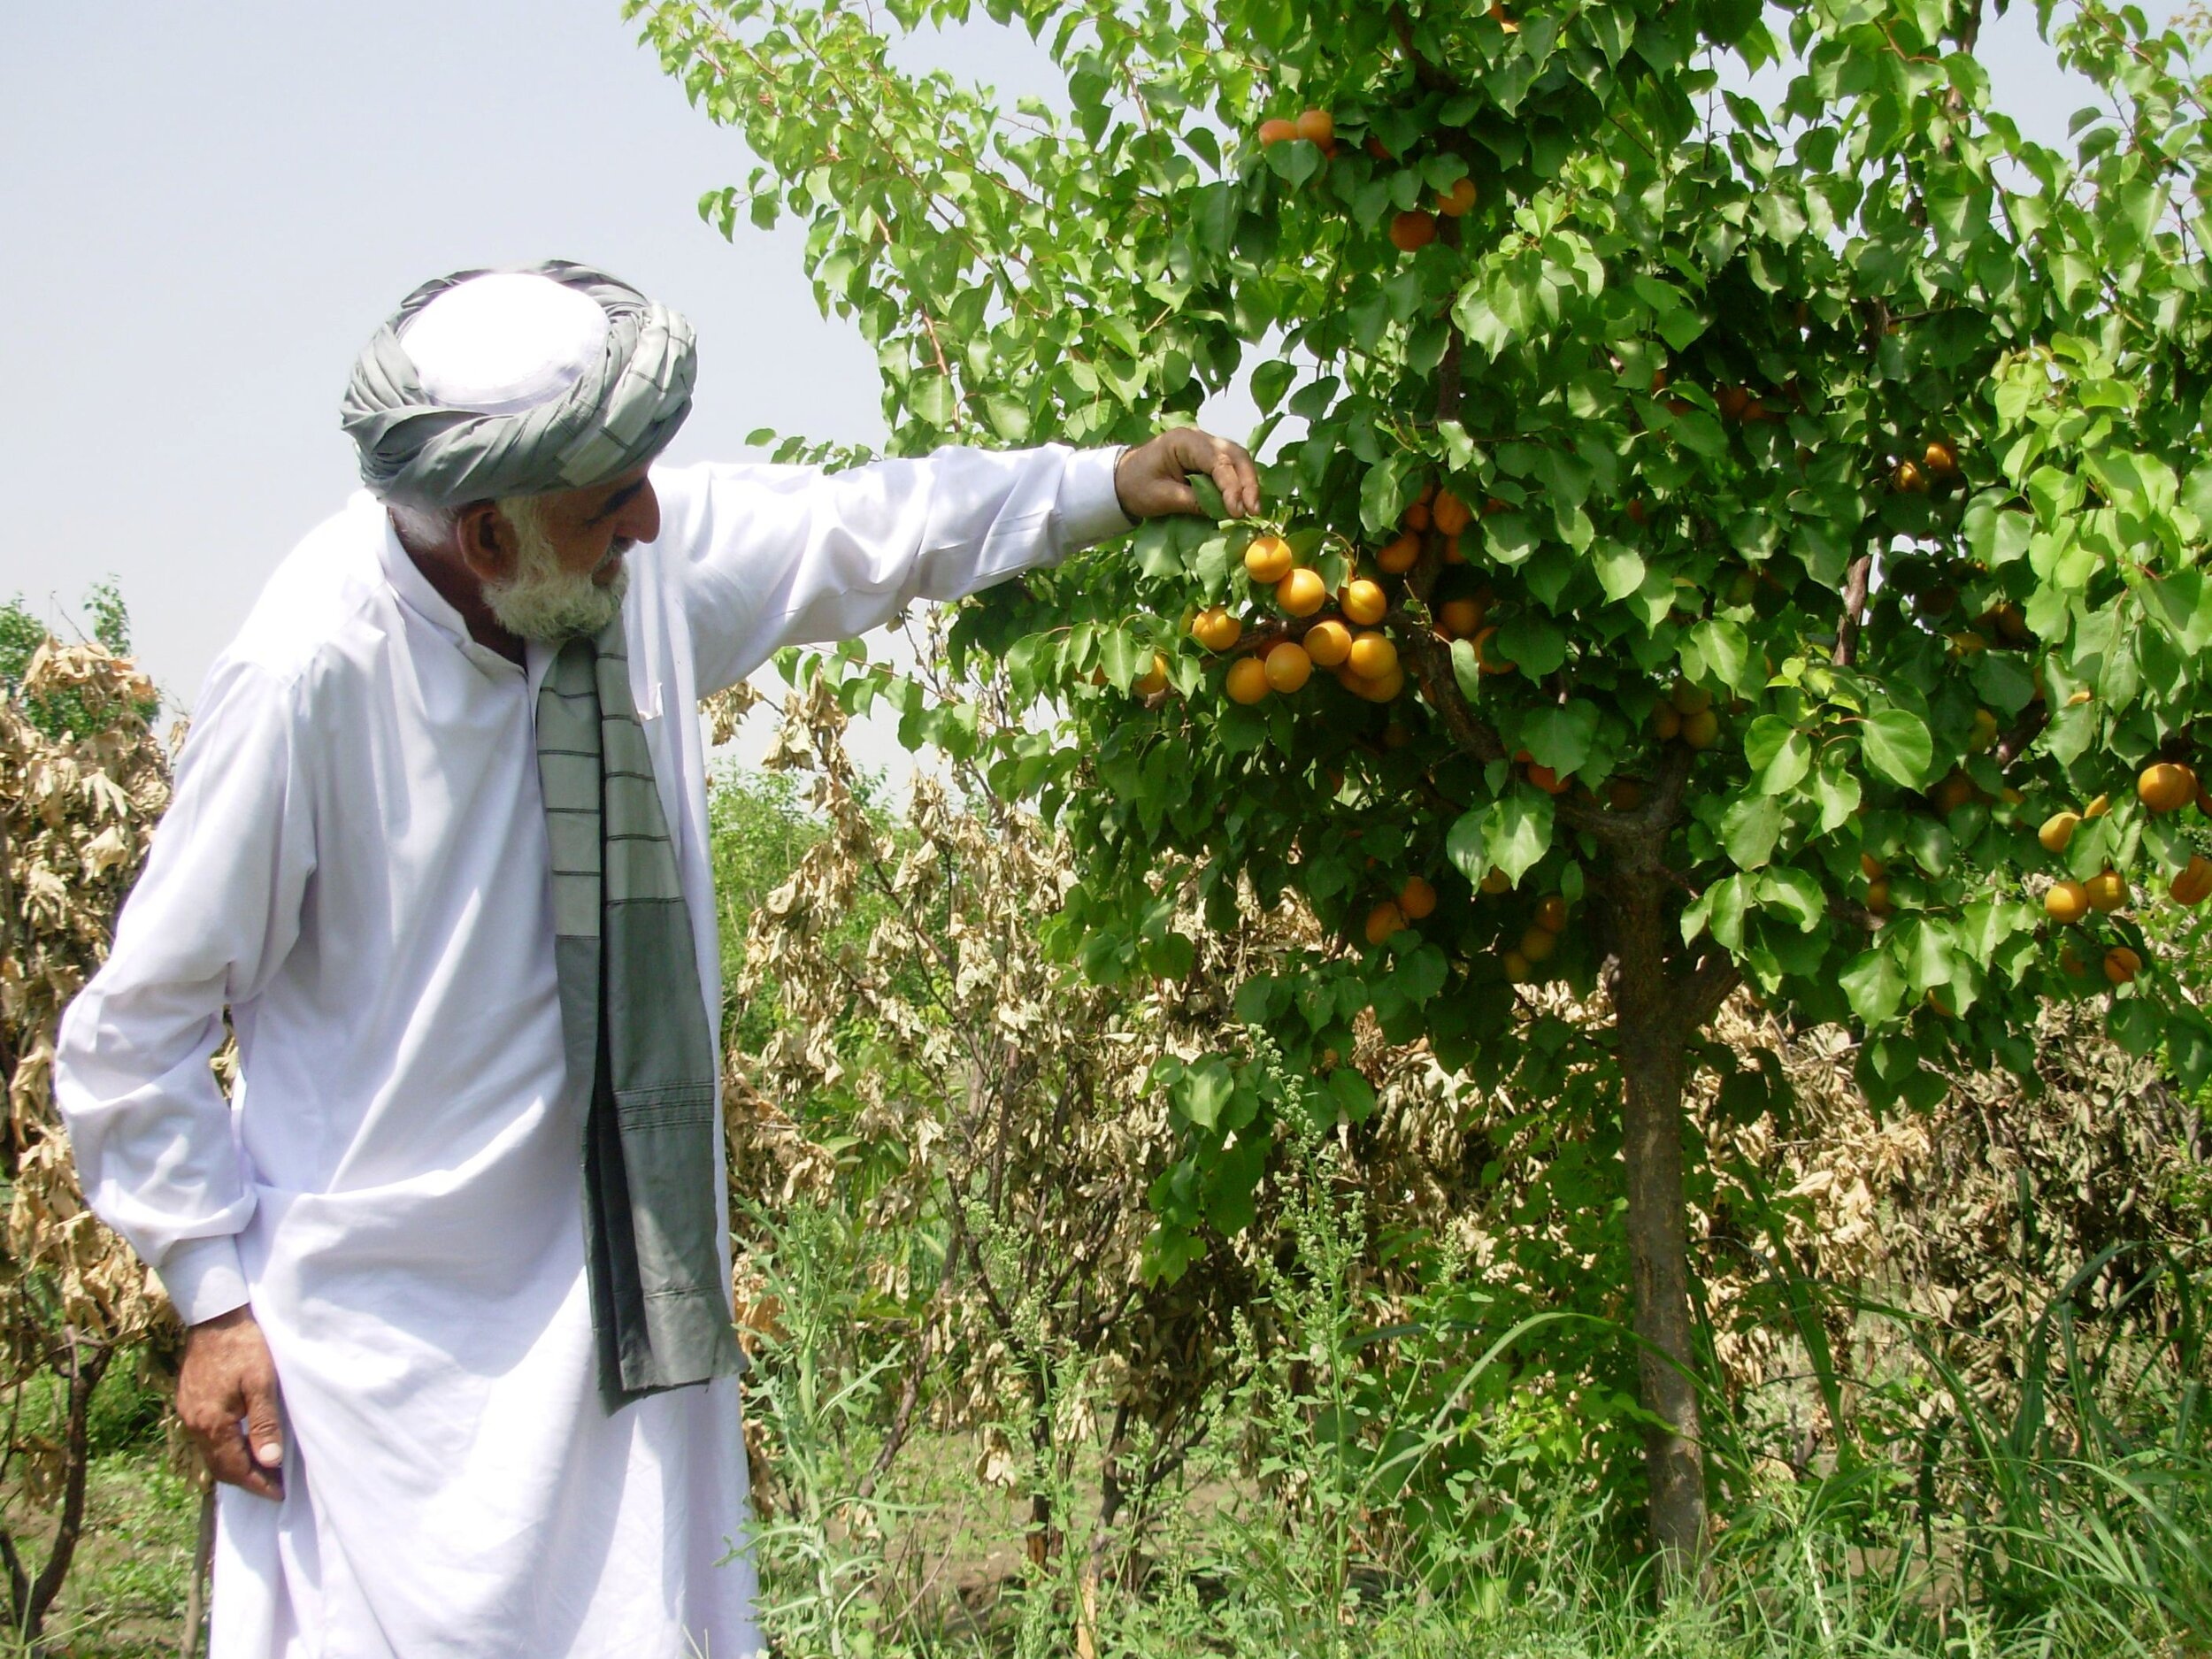 Afghan-Farmer-Roots-of-Peace-Afghanistan-Apricot-Orchard-Tree.JPG